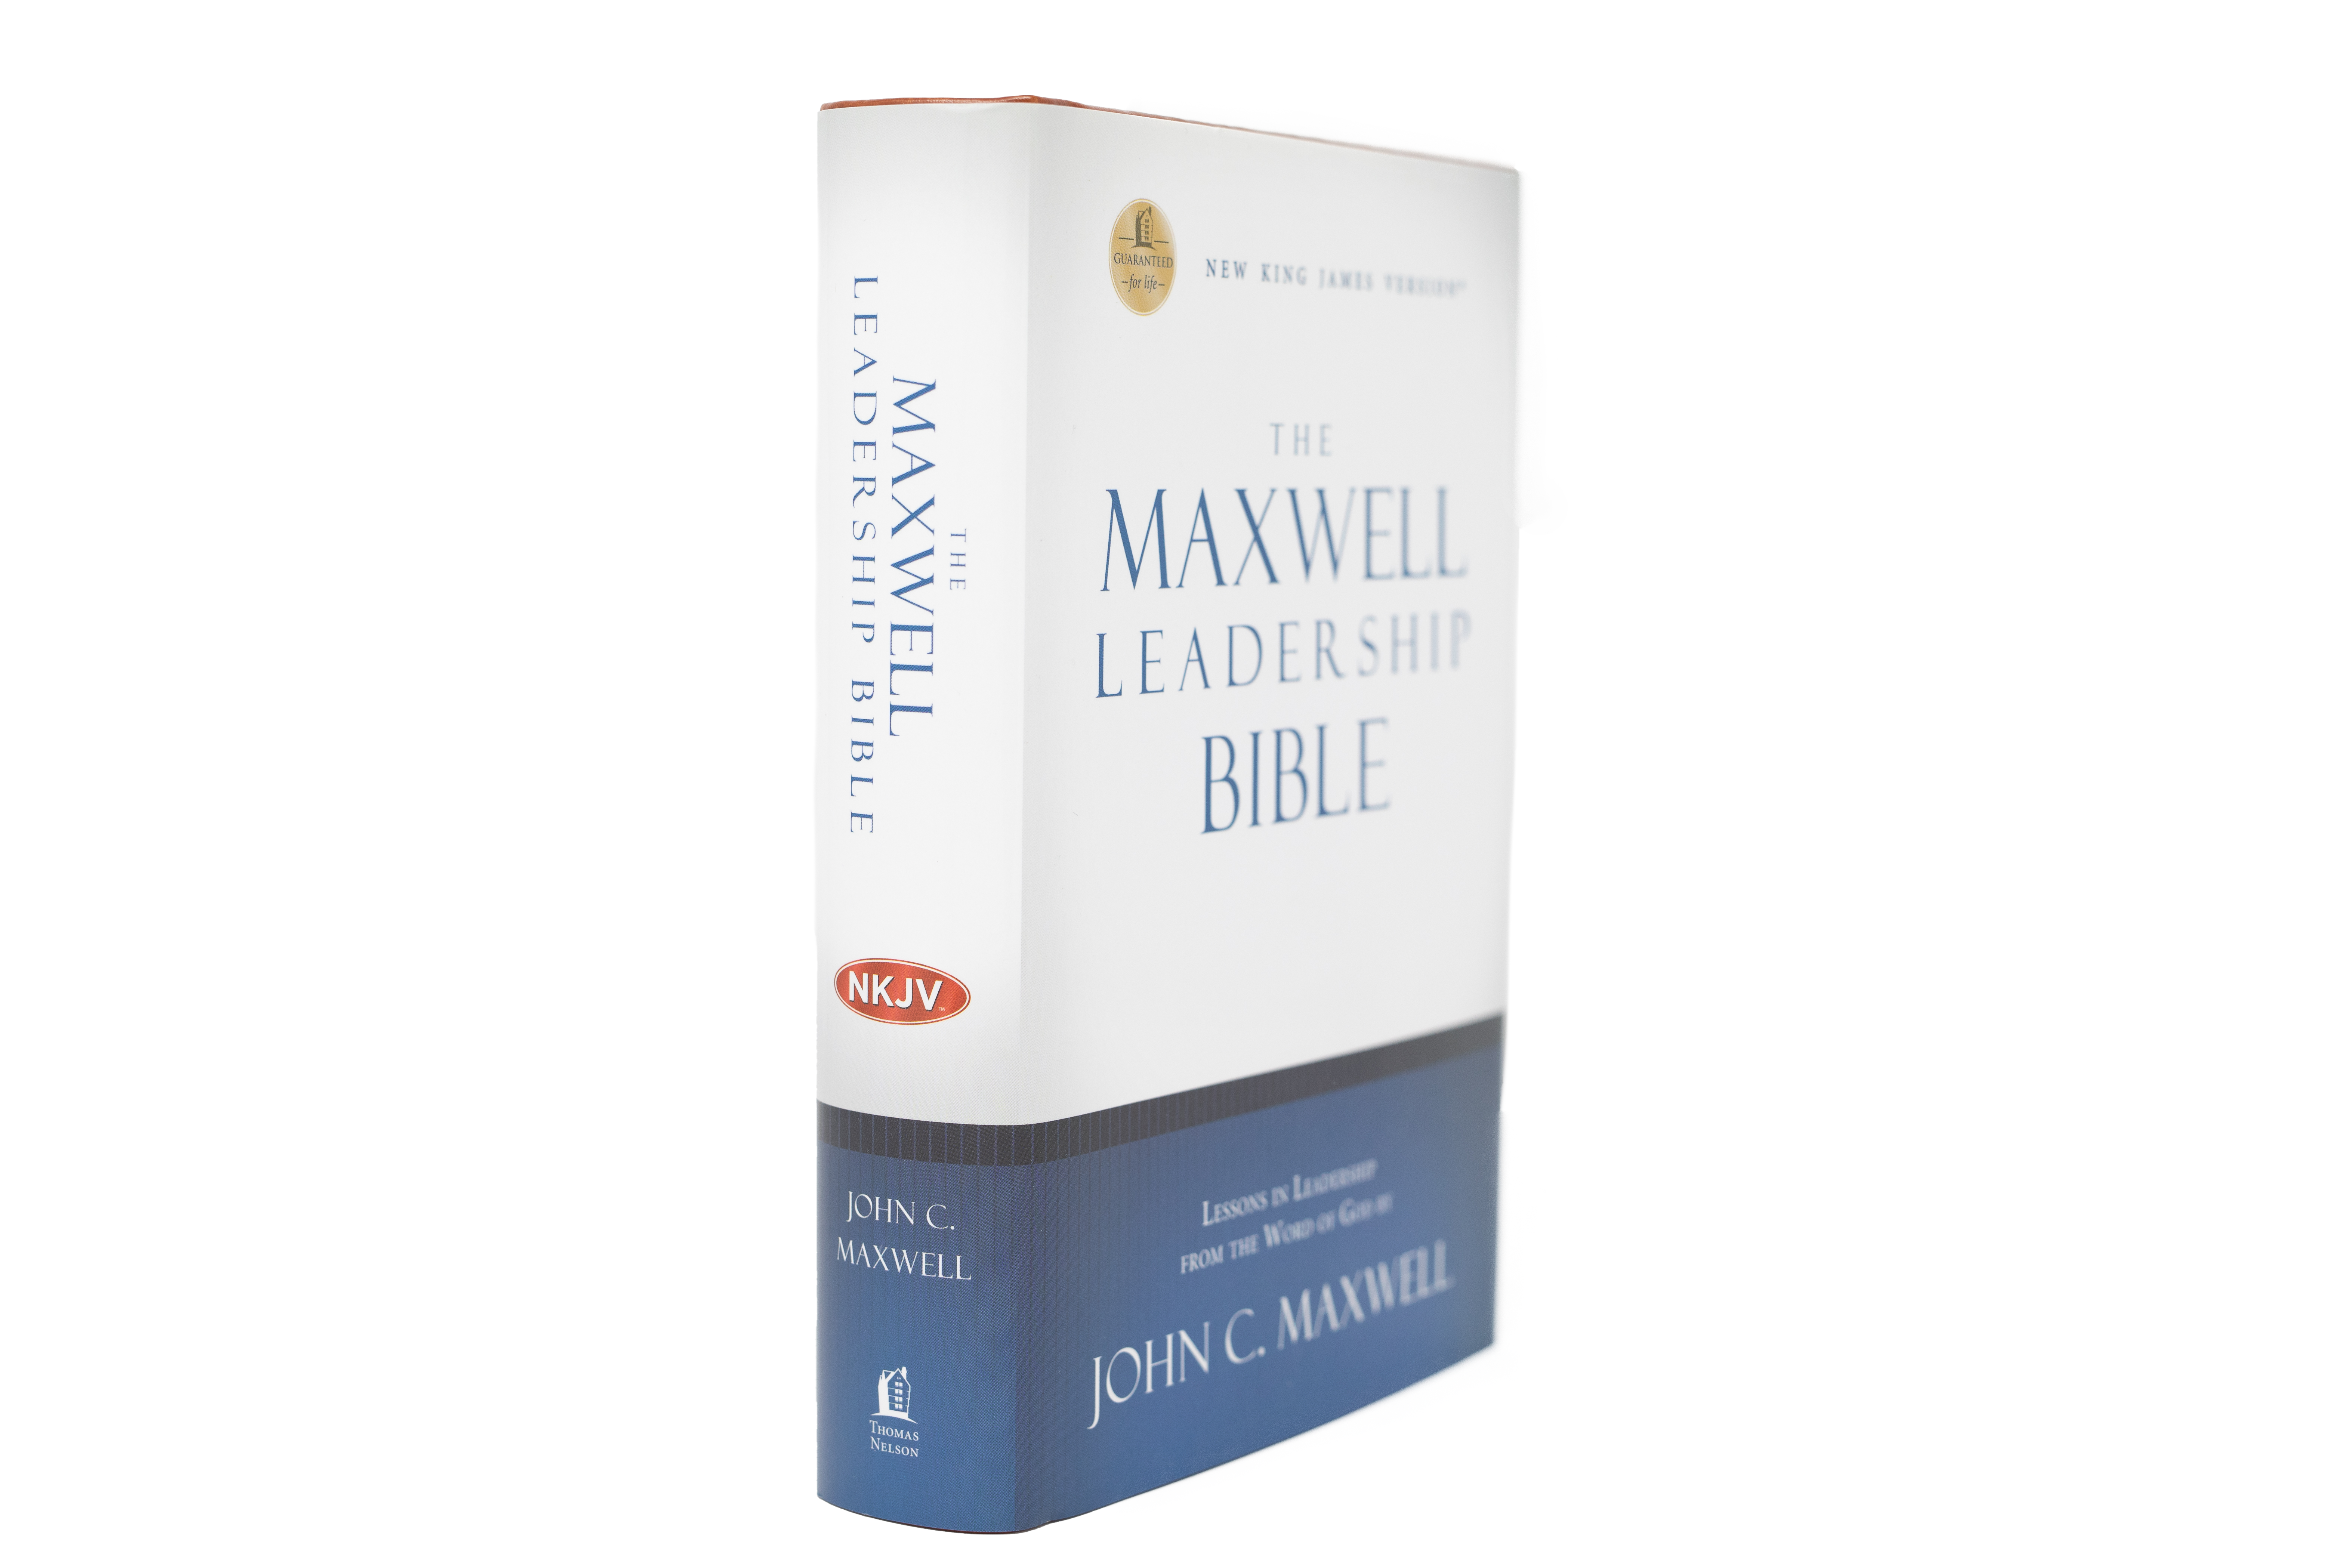 The Maxwell Leadership Bible Revised Briefcase Edition - [NKJV]